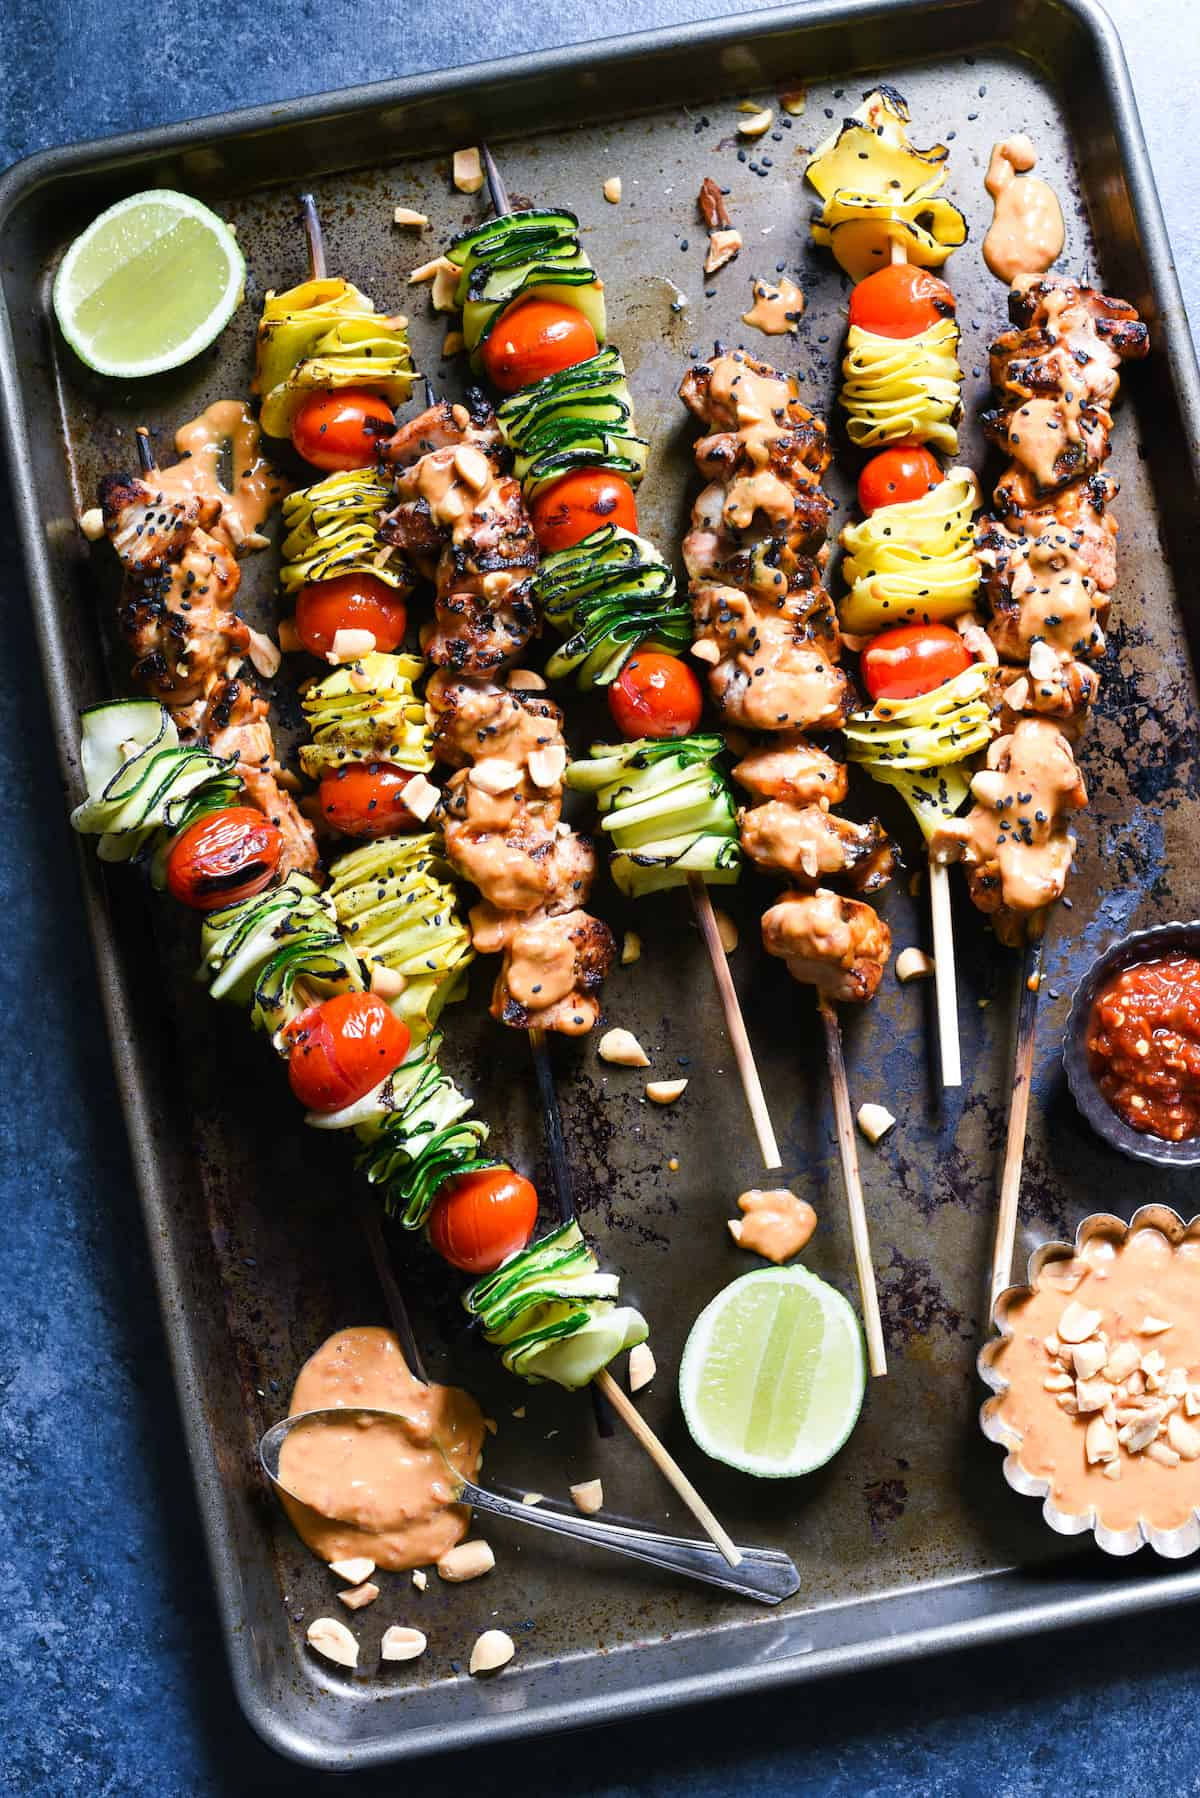 Spicy Peanut Chicken Skewers - The whole family will love this easy grilled take on peanut chicken satay. Serve with veggie skewers for a complete meal! | foxeslovelemons.com